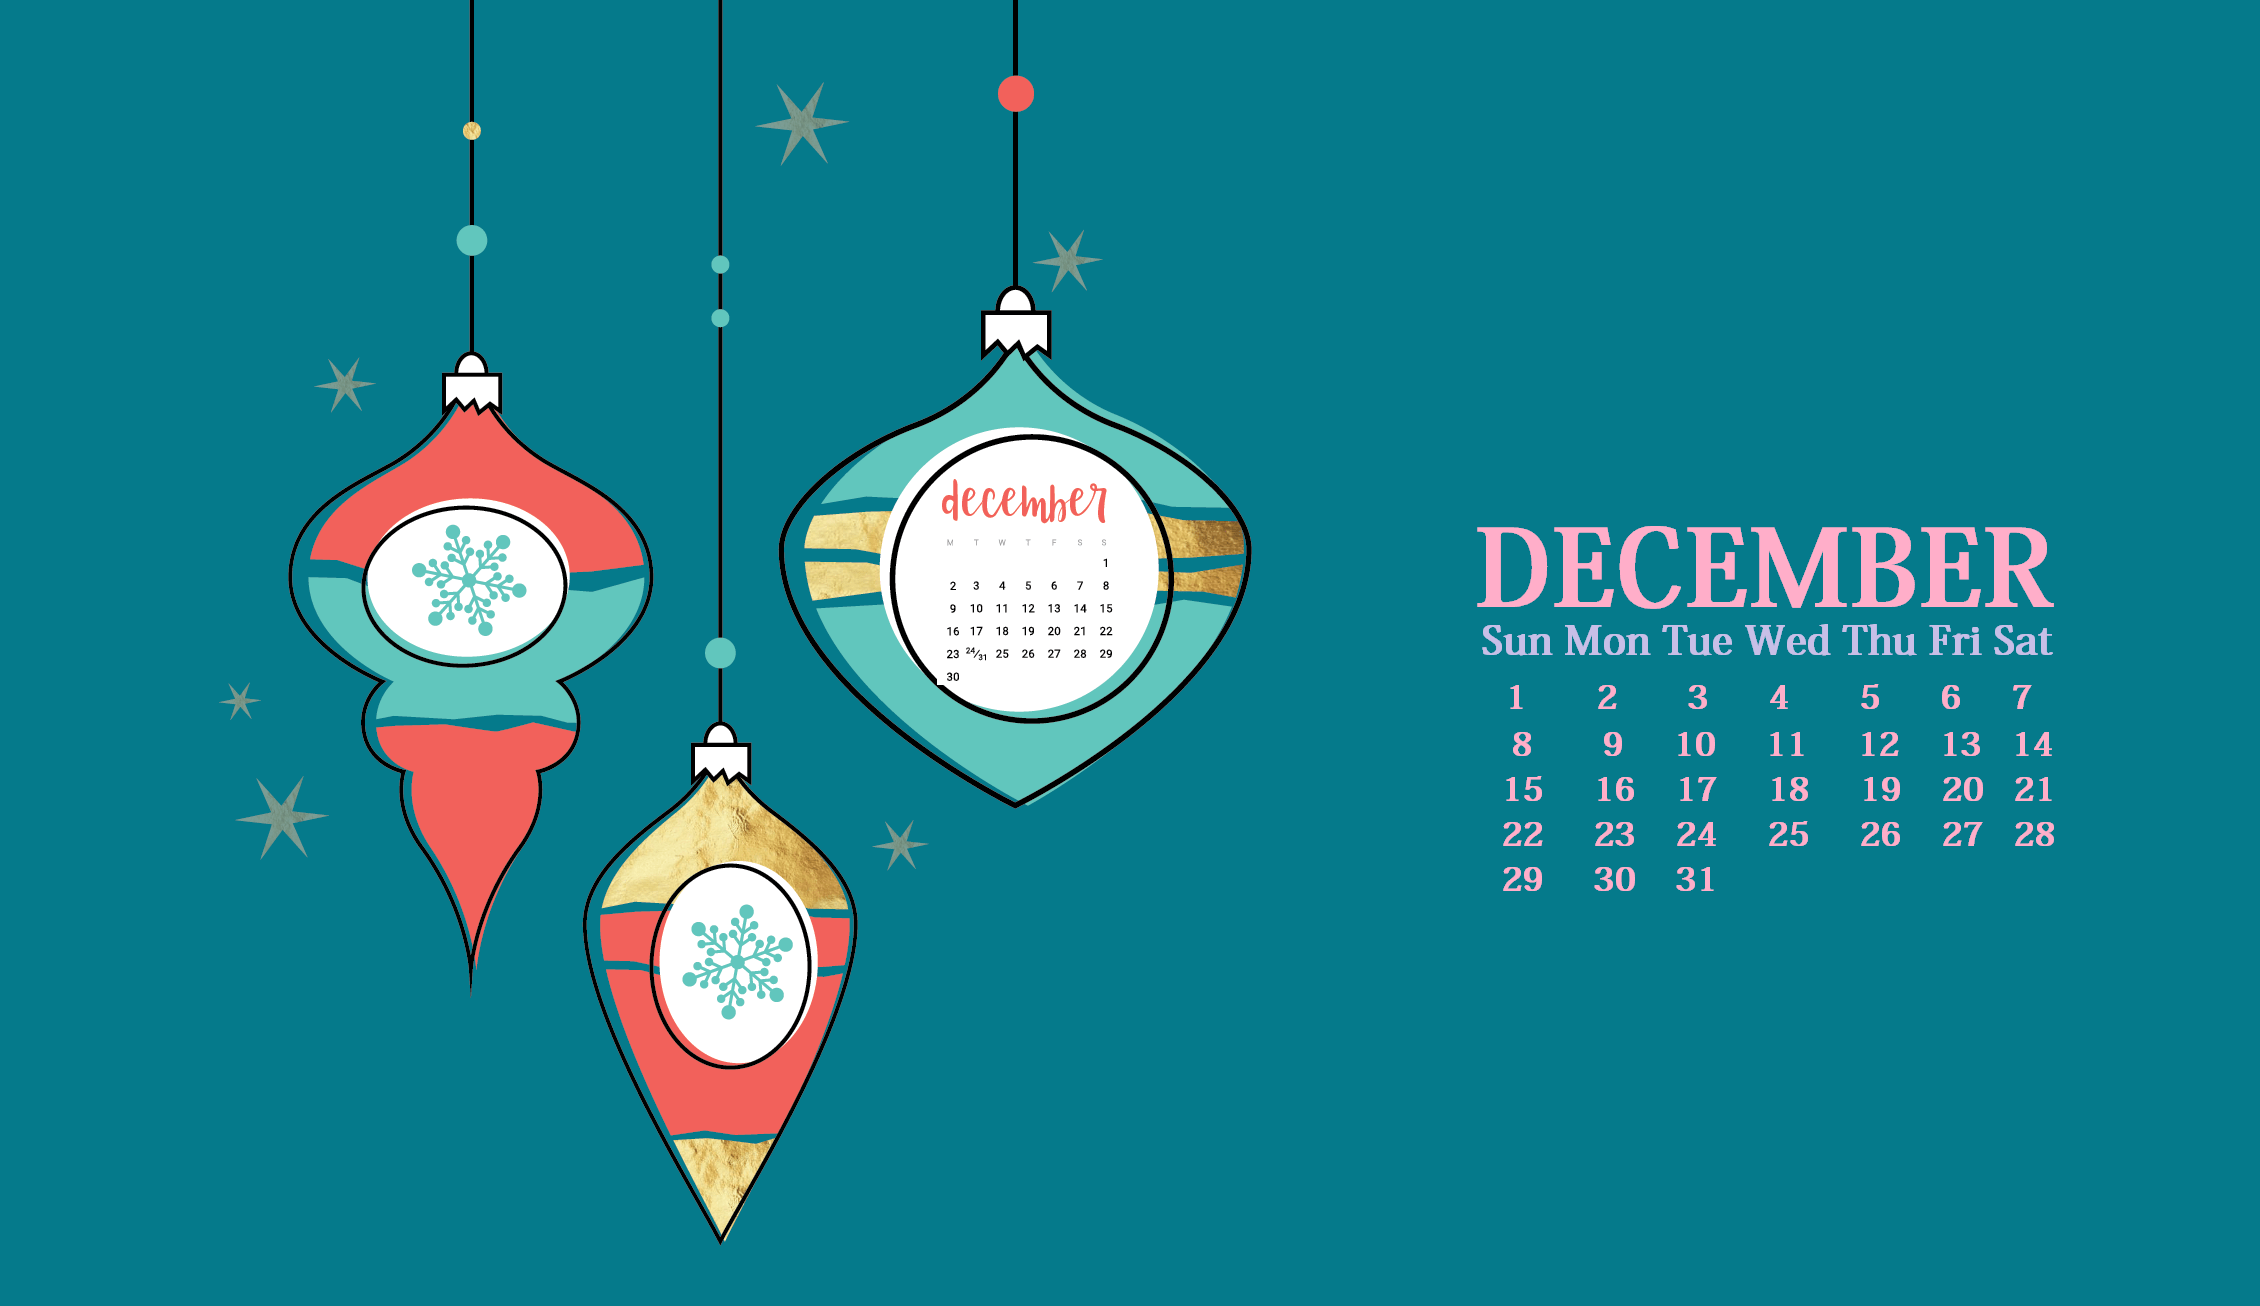 December 2019 HD Wallpaper Calendar